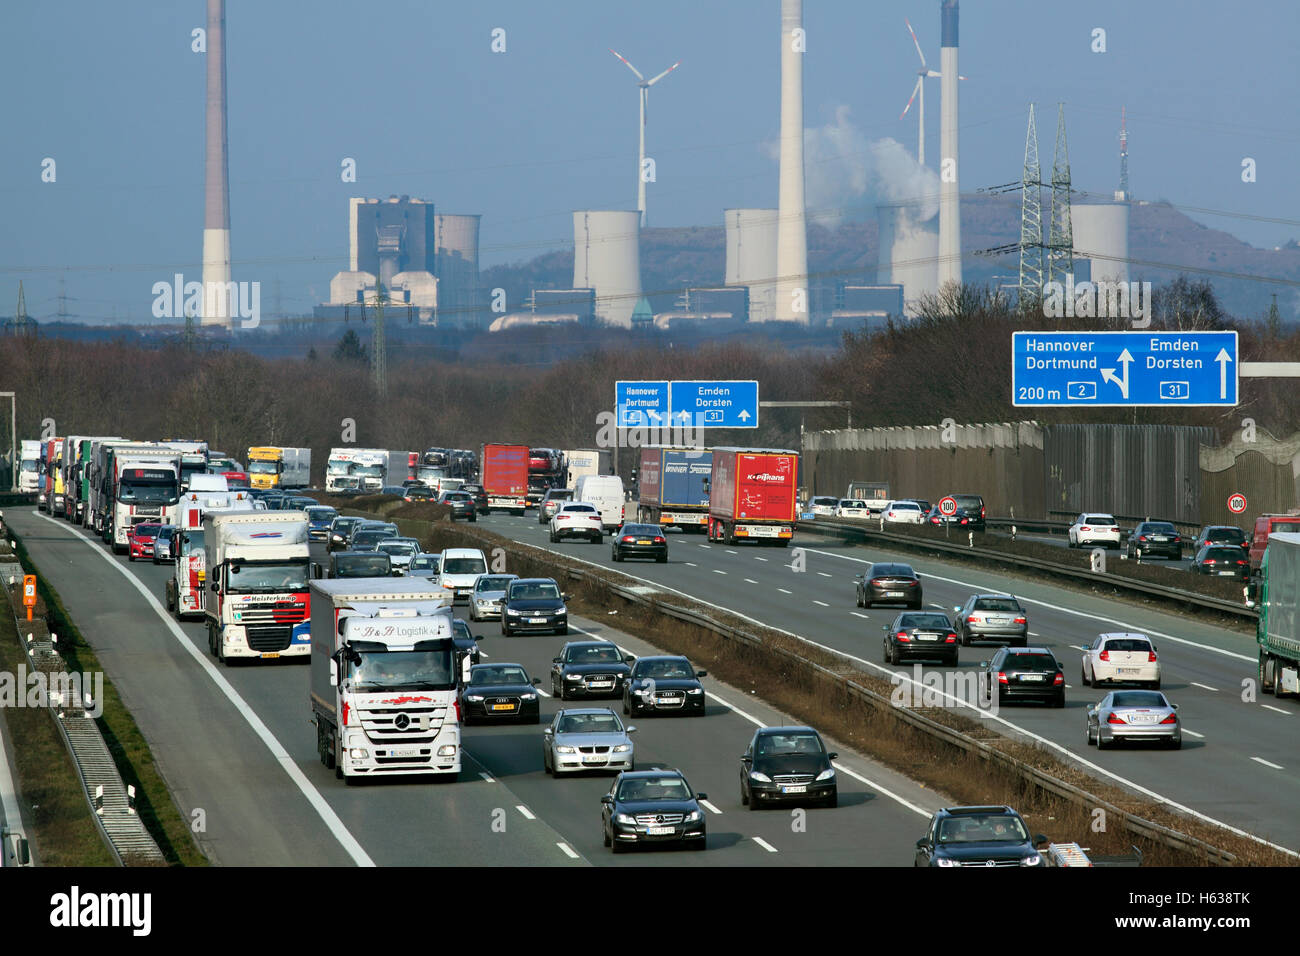 Industrial landscape in the Ruhr: the A2 autobahn near junction 3, Bottrop, North-Rhine Westphalia, Germany. - Stock Image